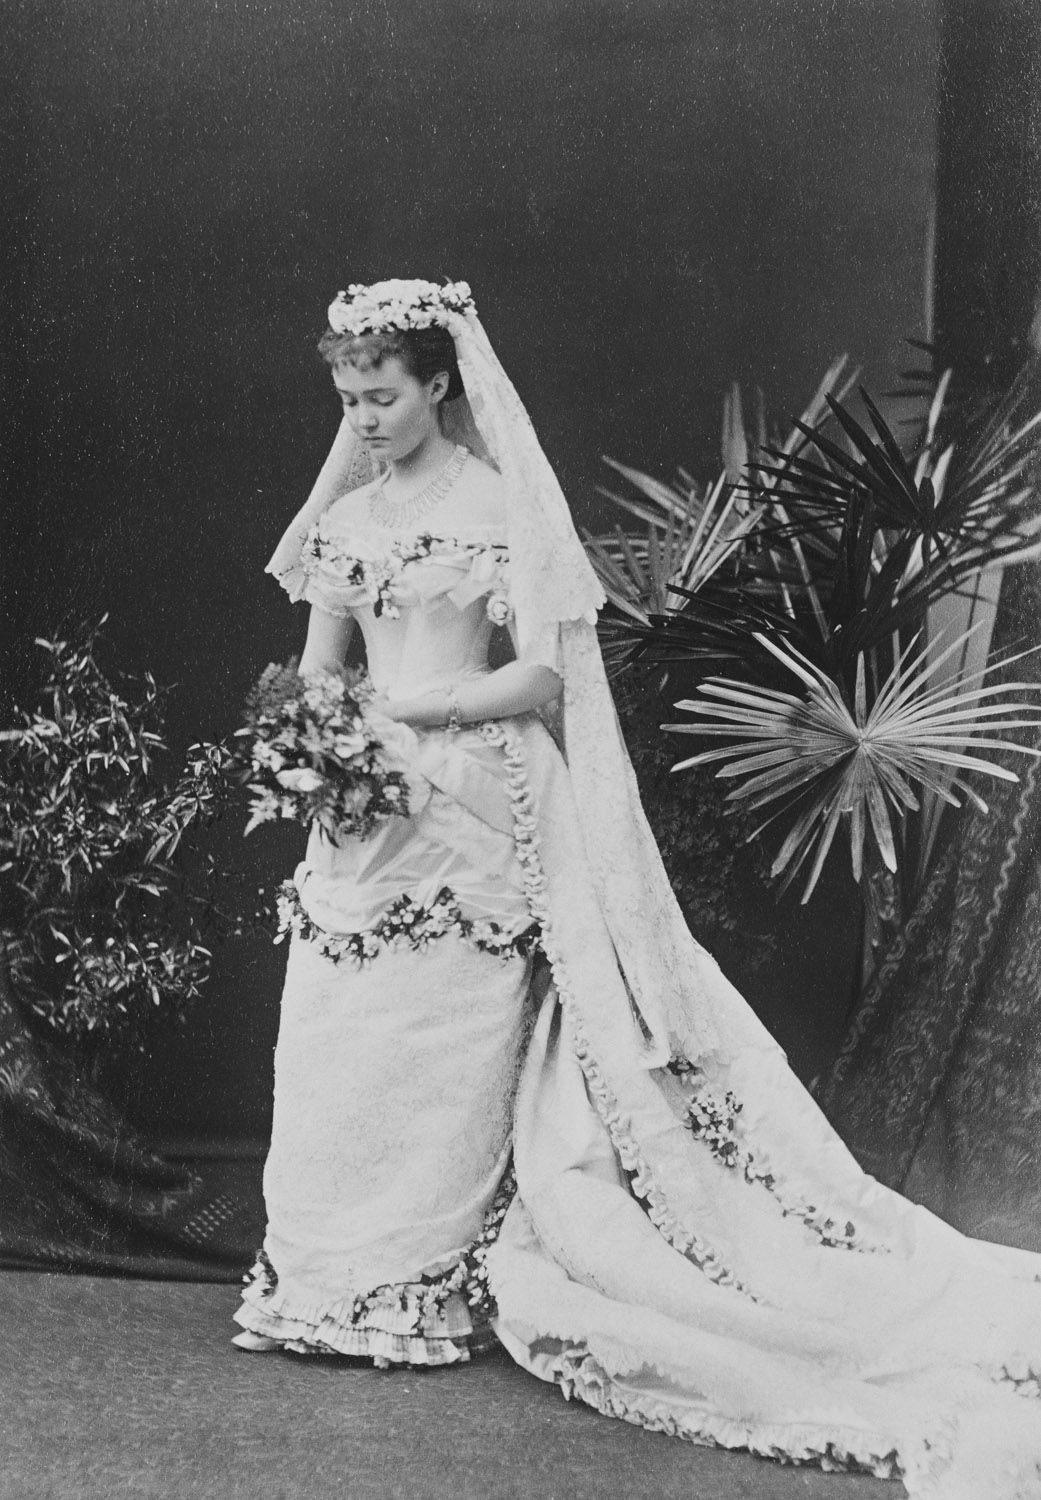 The duchess of connaught when princess louise margaret of for Wedding dresses king of prussia